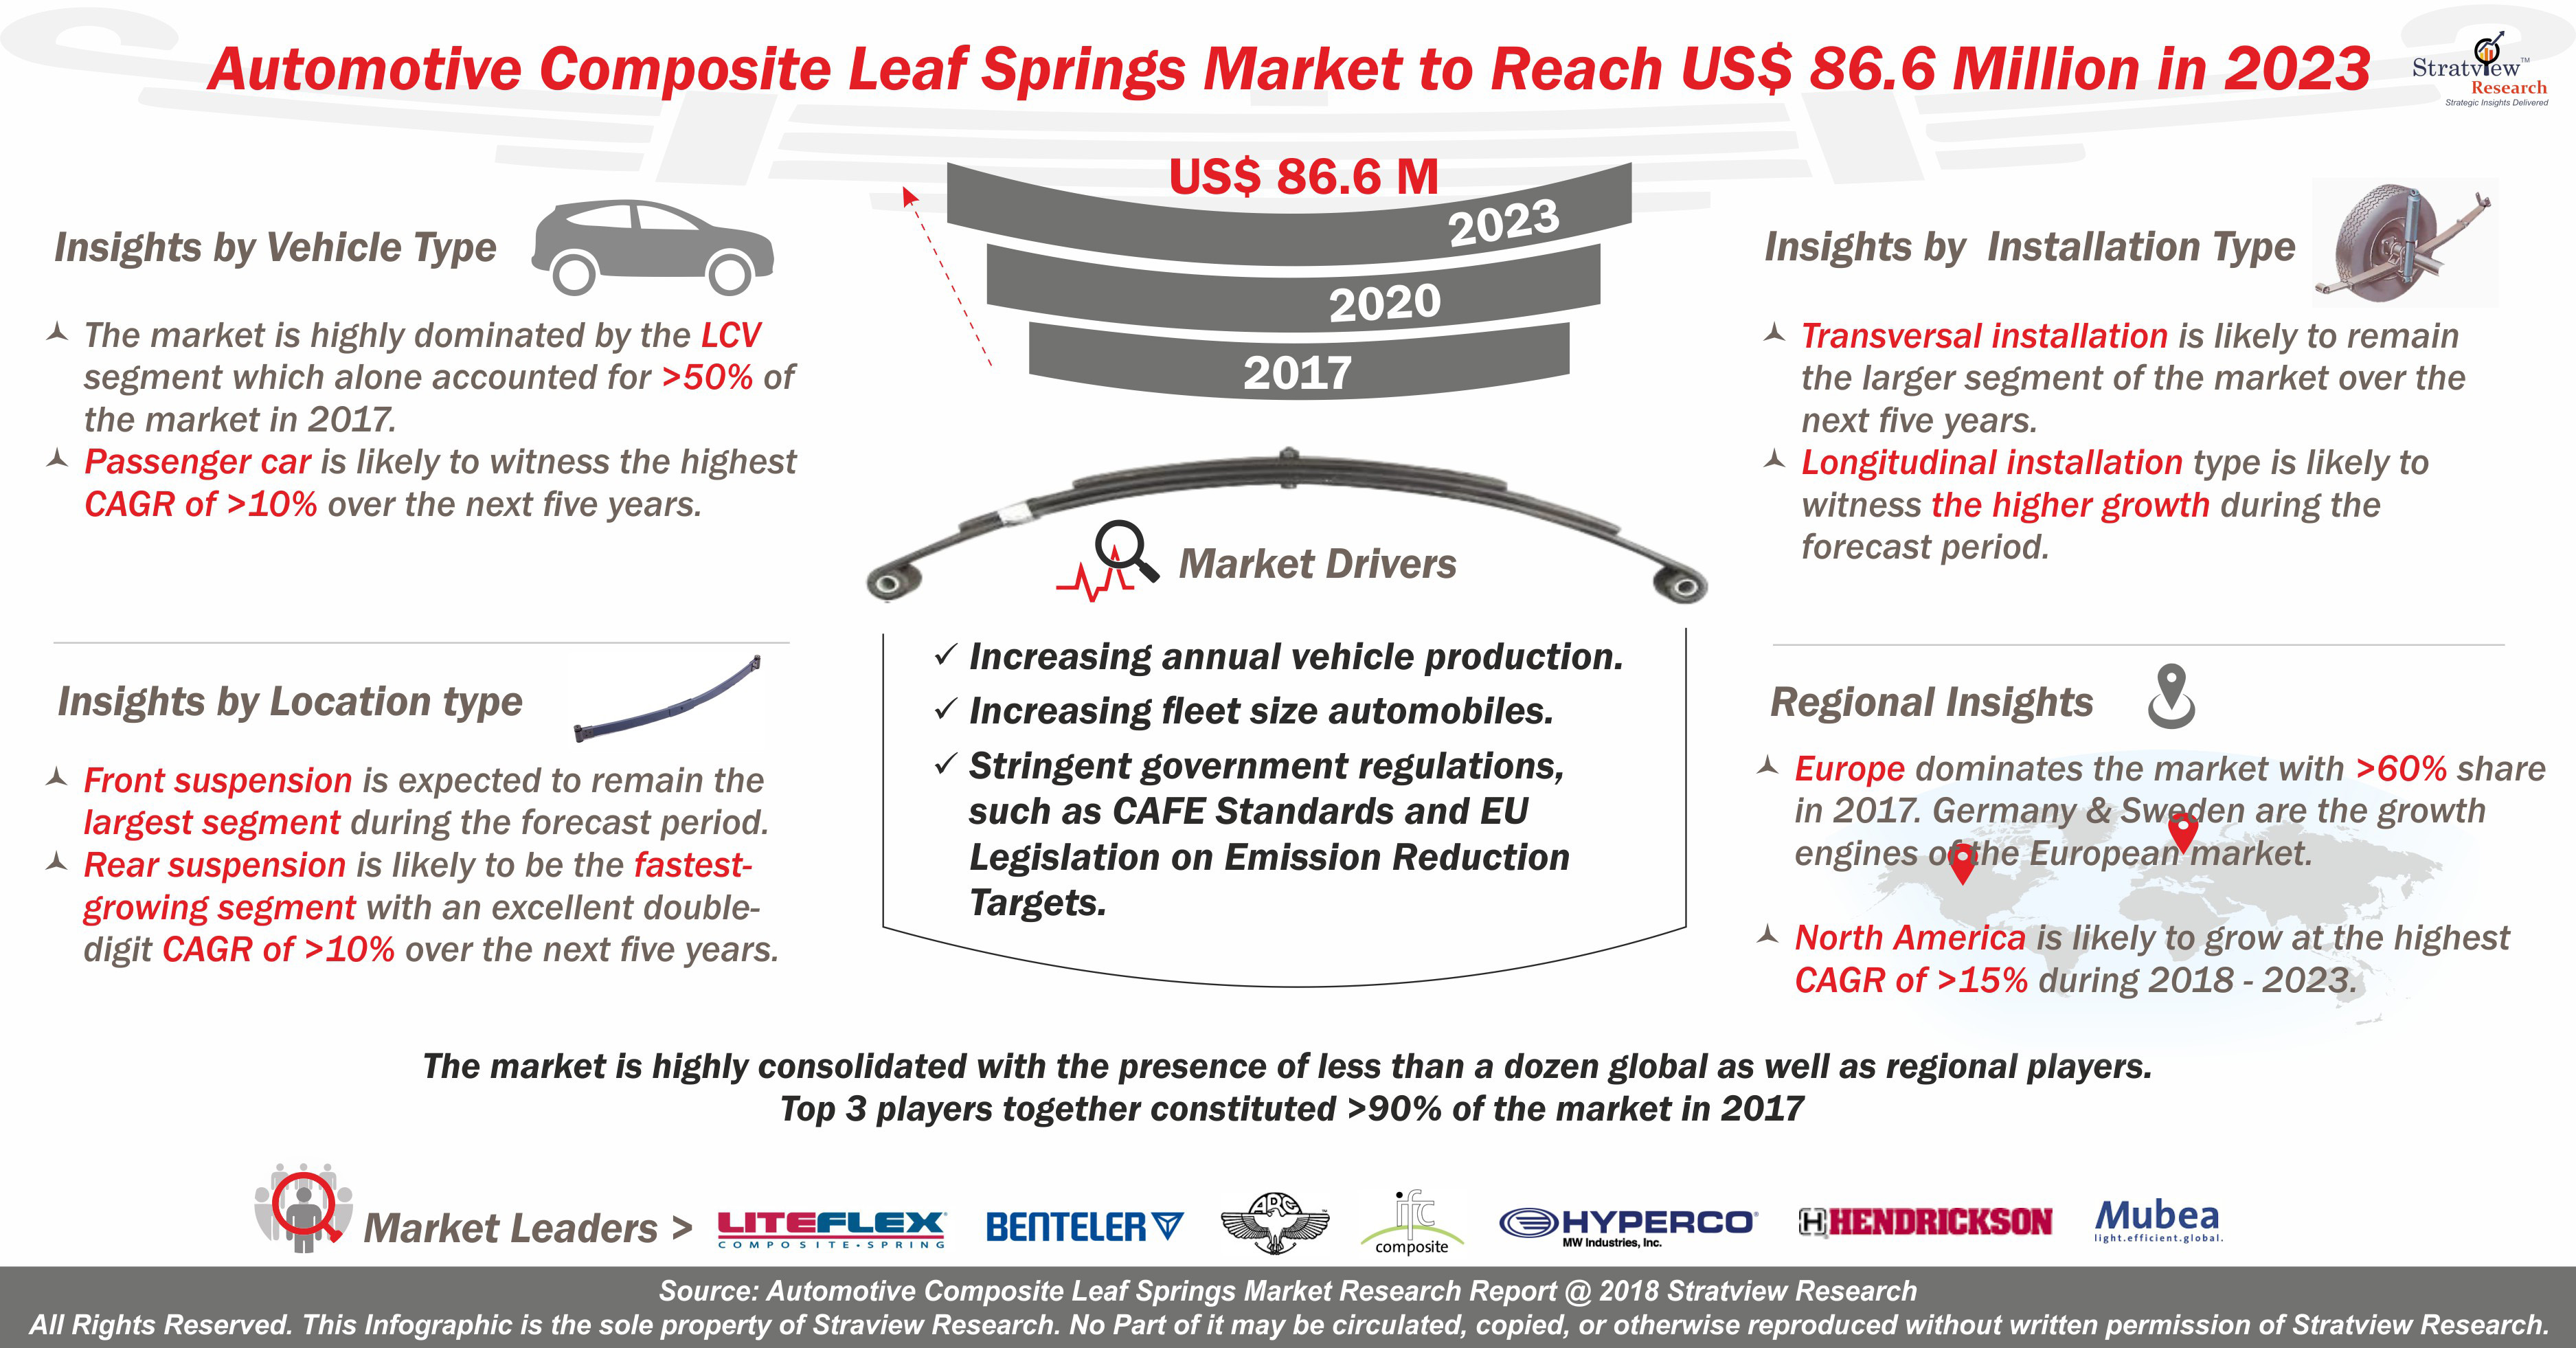 Automotive Composite Leaf Springs Market